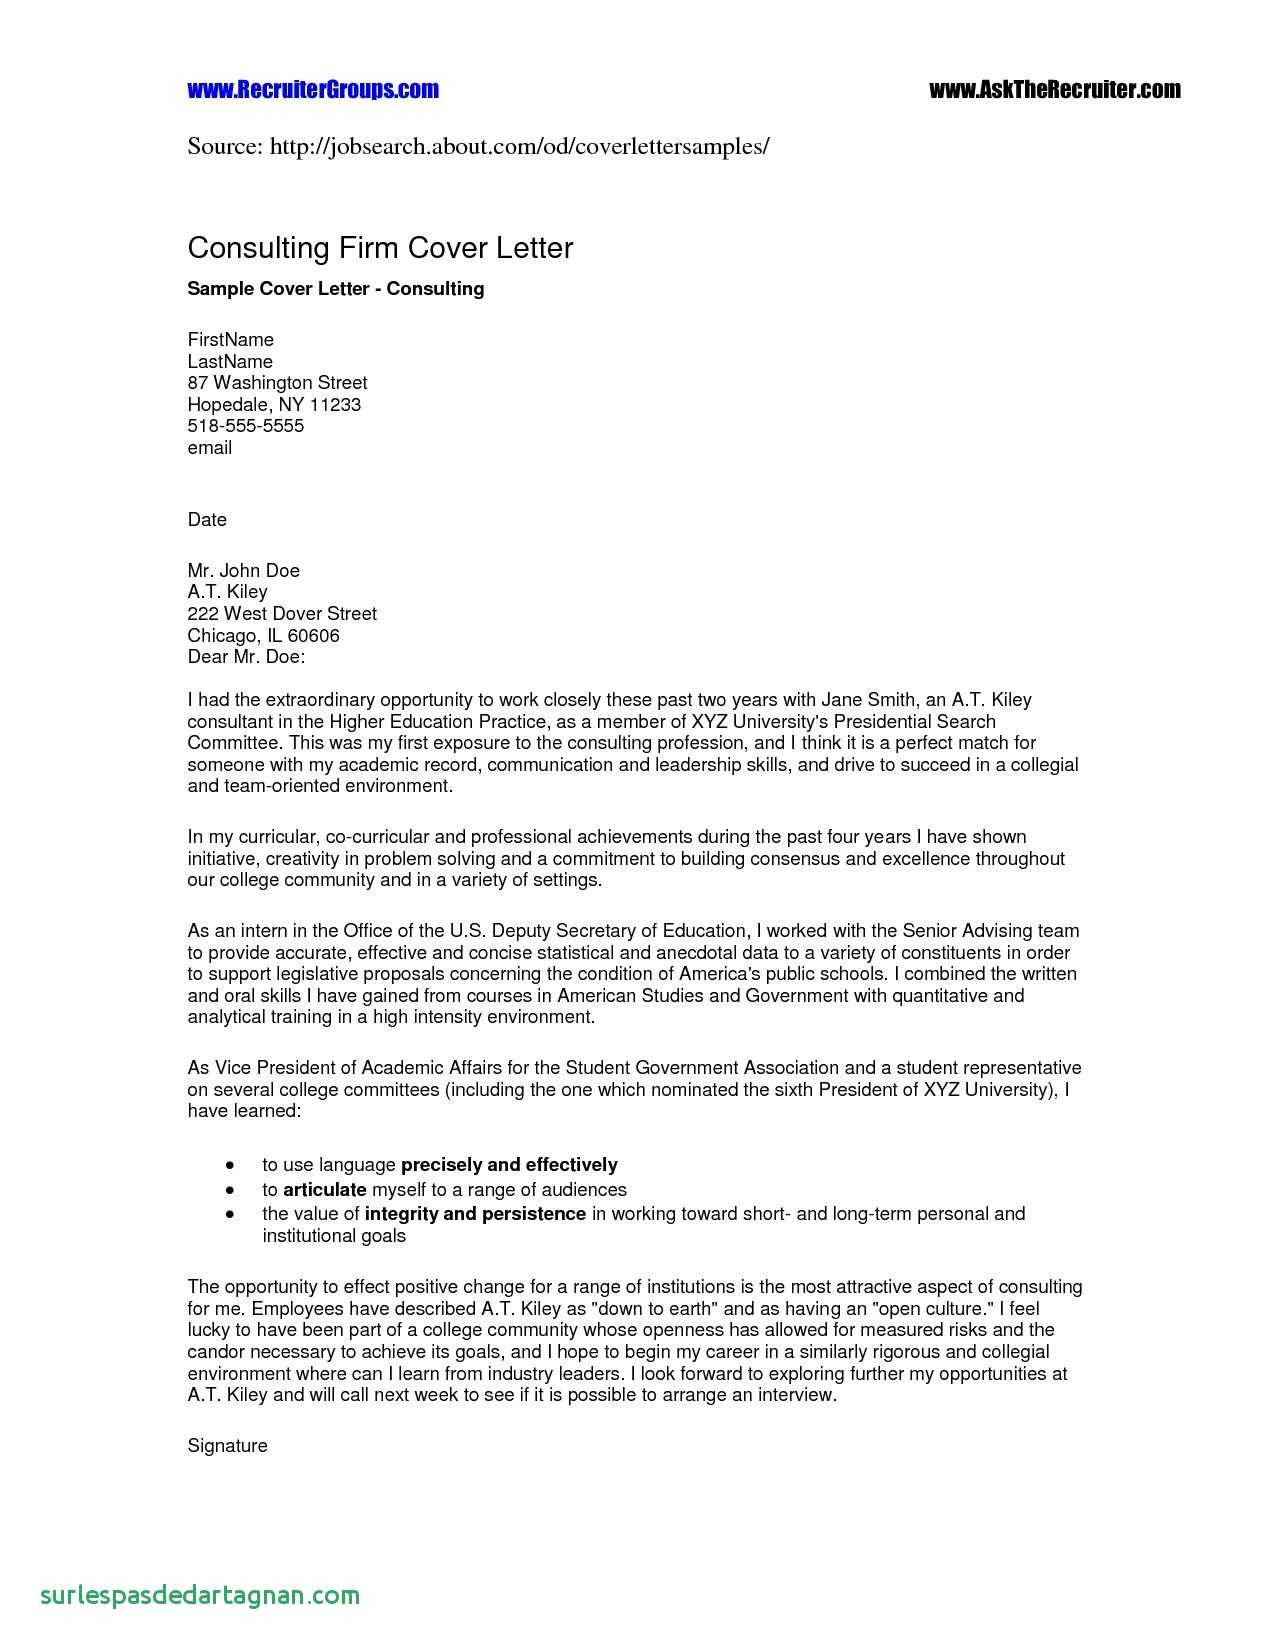 Cover Letter Template Google Docs Samples